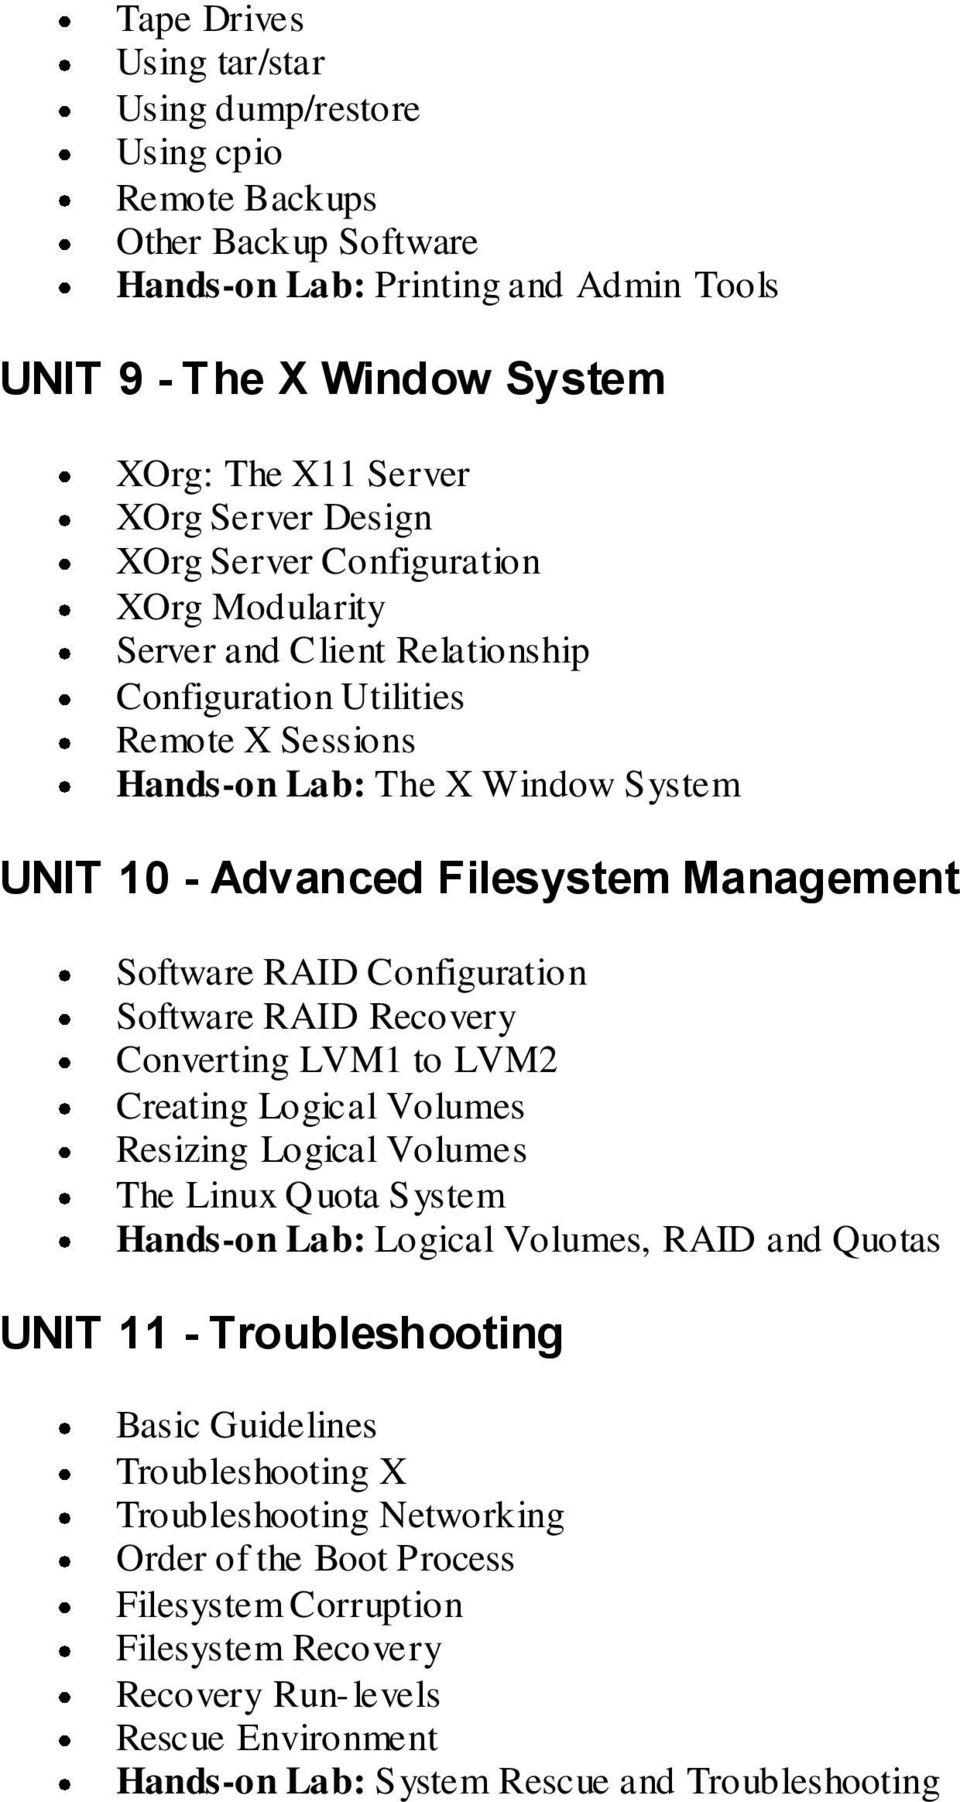 Software RAID Configuration Software RAID Recovery Converting LVM1 to LVM2 Creating Logical Volumes Resizing Logical Volumes The Linux Quota System Hands-on Lab: Logical Volumes, RAID and Quotas UNIT